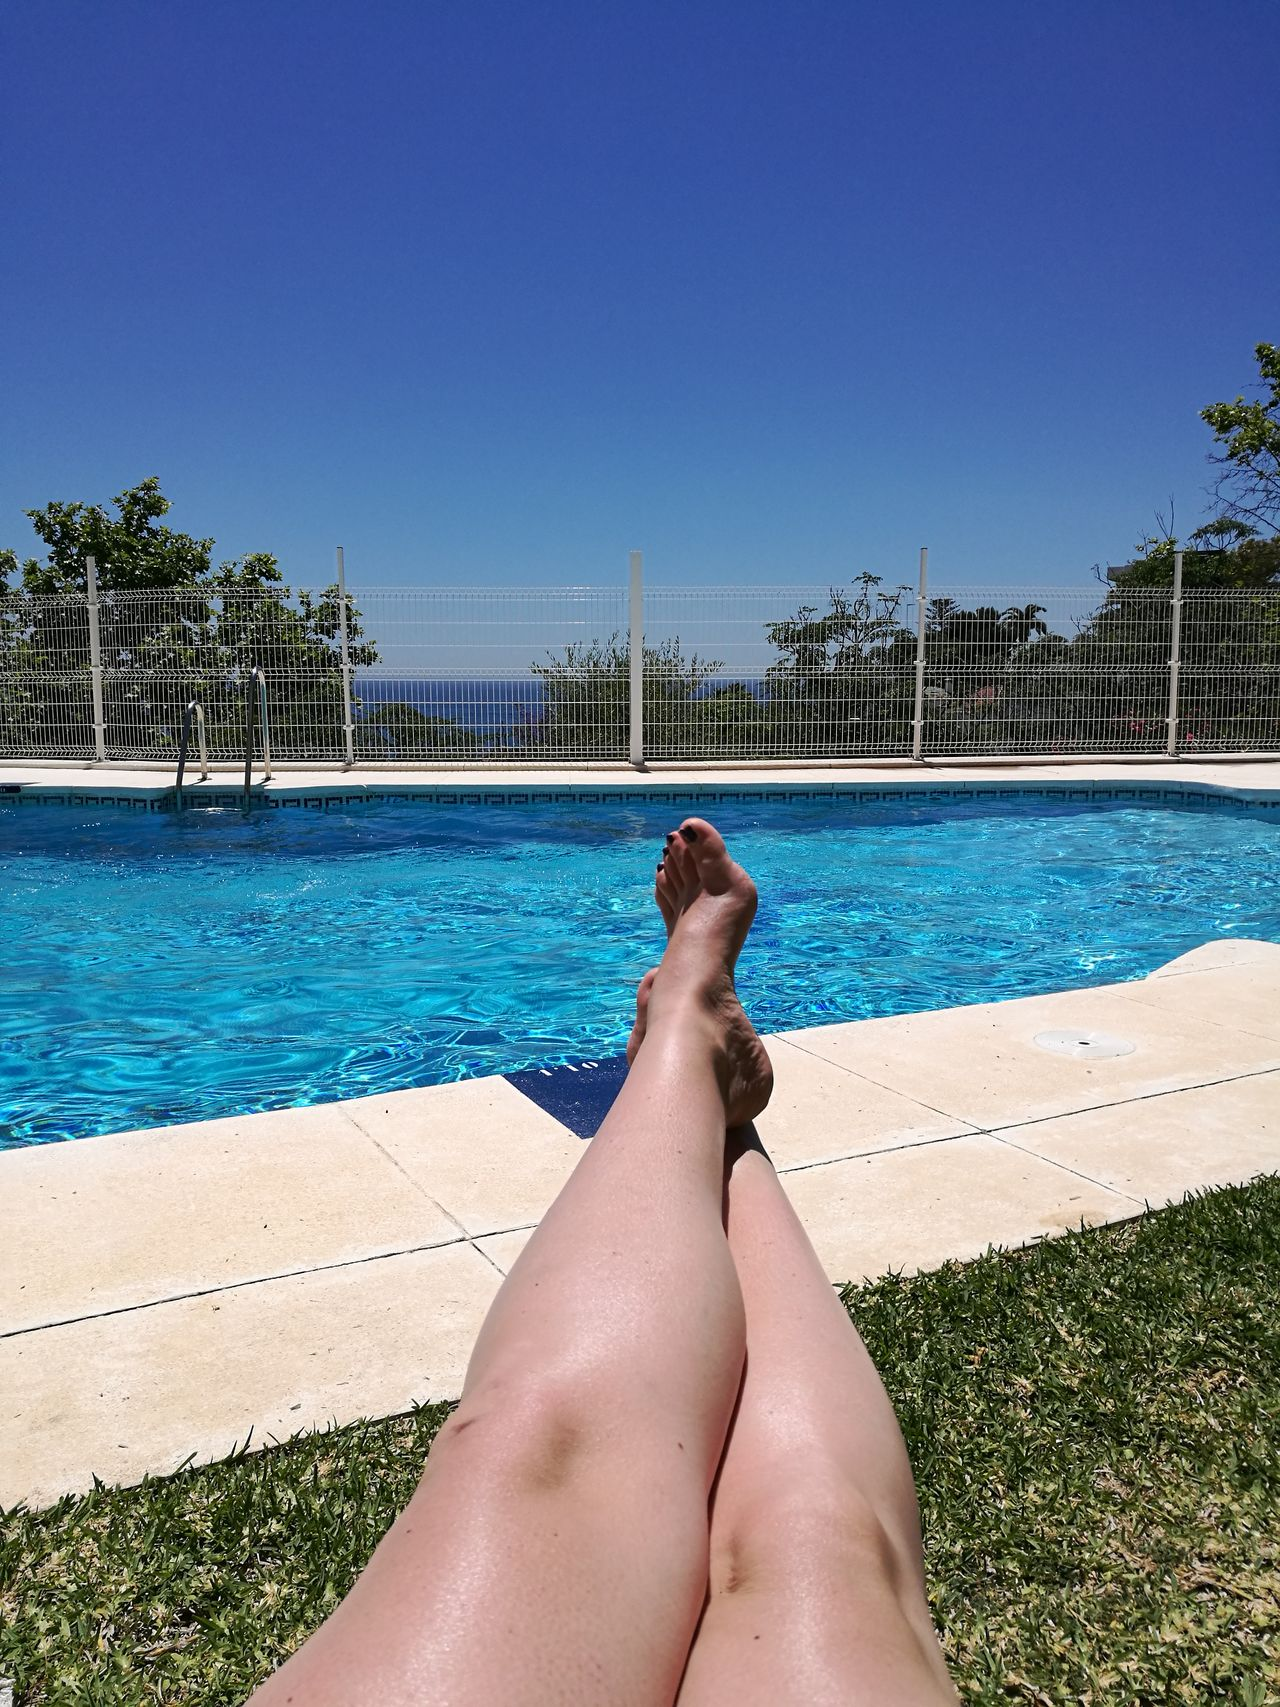 Human Leg Vacations Human Body Part Human Foot Barefoot Summer Relaxation Only Women Water Sunbathing One Person Sea Waterfront Poolside Pool One Woman Only